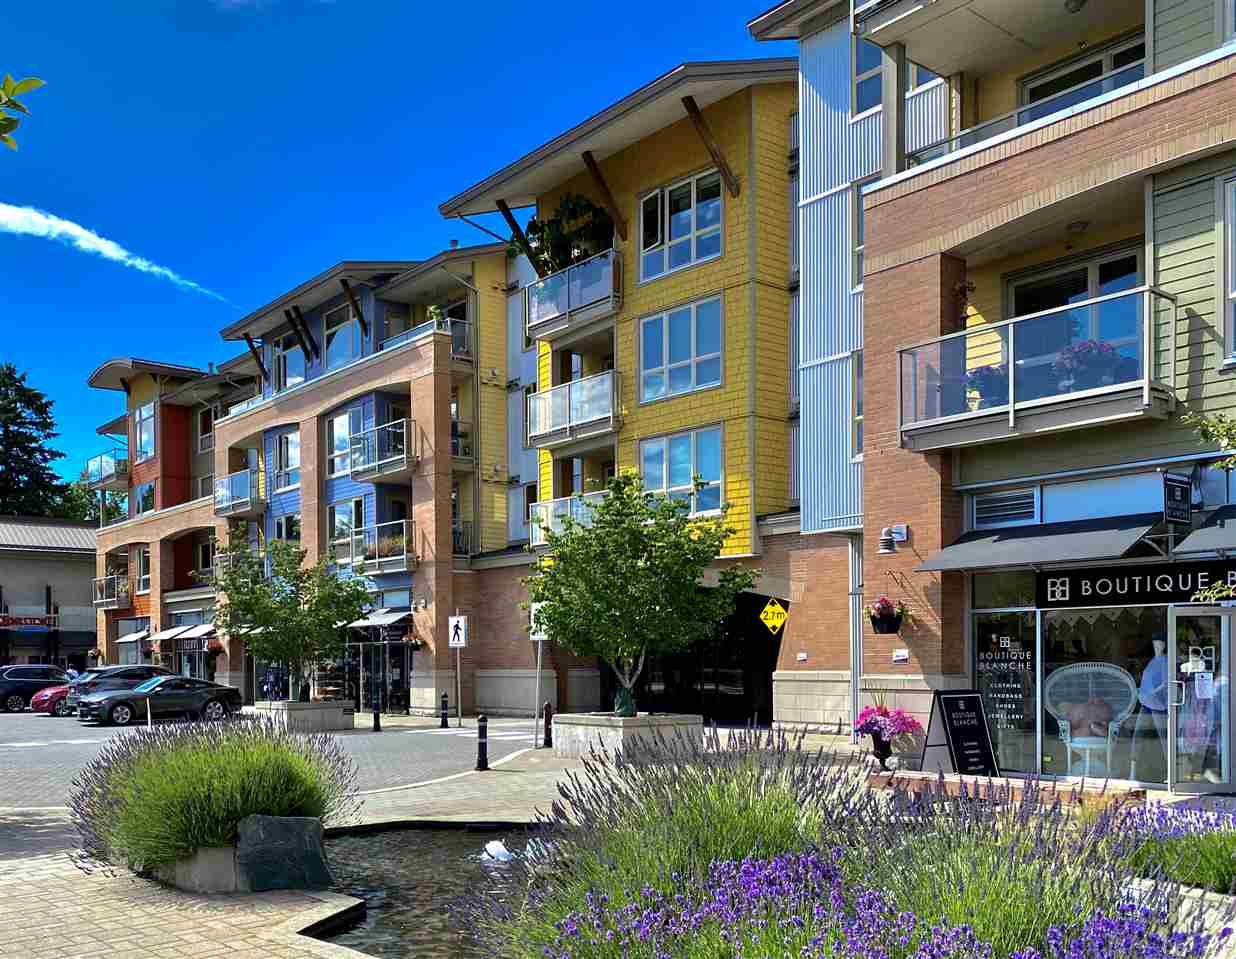 406 1315 56 STREET - Cliff Drive Apartment/Condo for sale, 2 Bedrooms (R2447556)